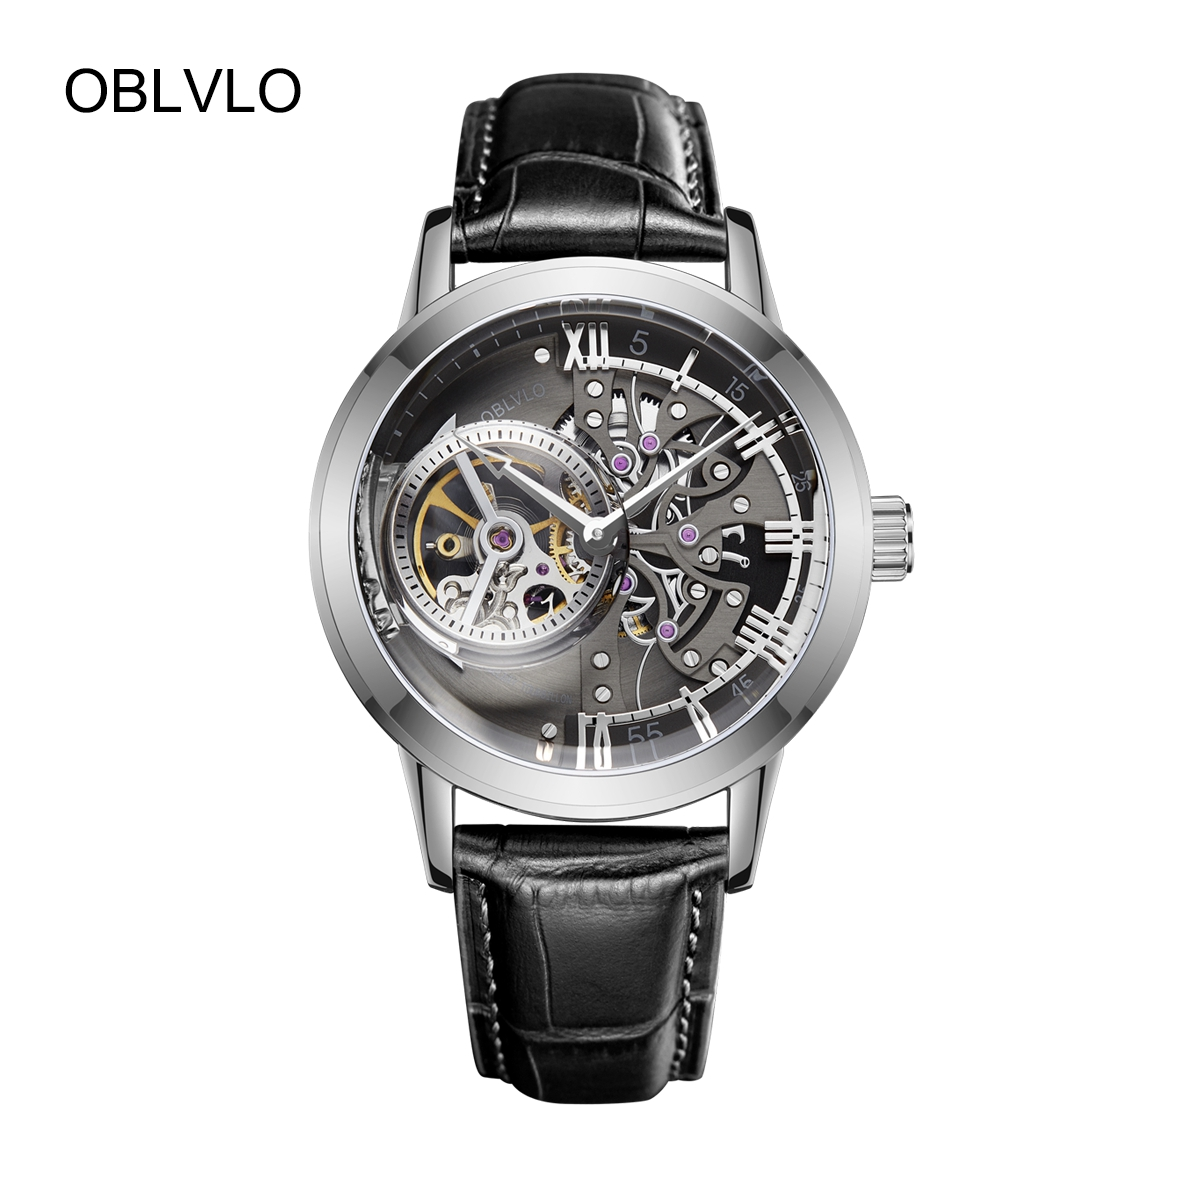 OBLVLO Casual Automatic Watches Steel Mens Watches Genuine Leather Strap Skeleton Watches OBL8238-YBB